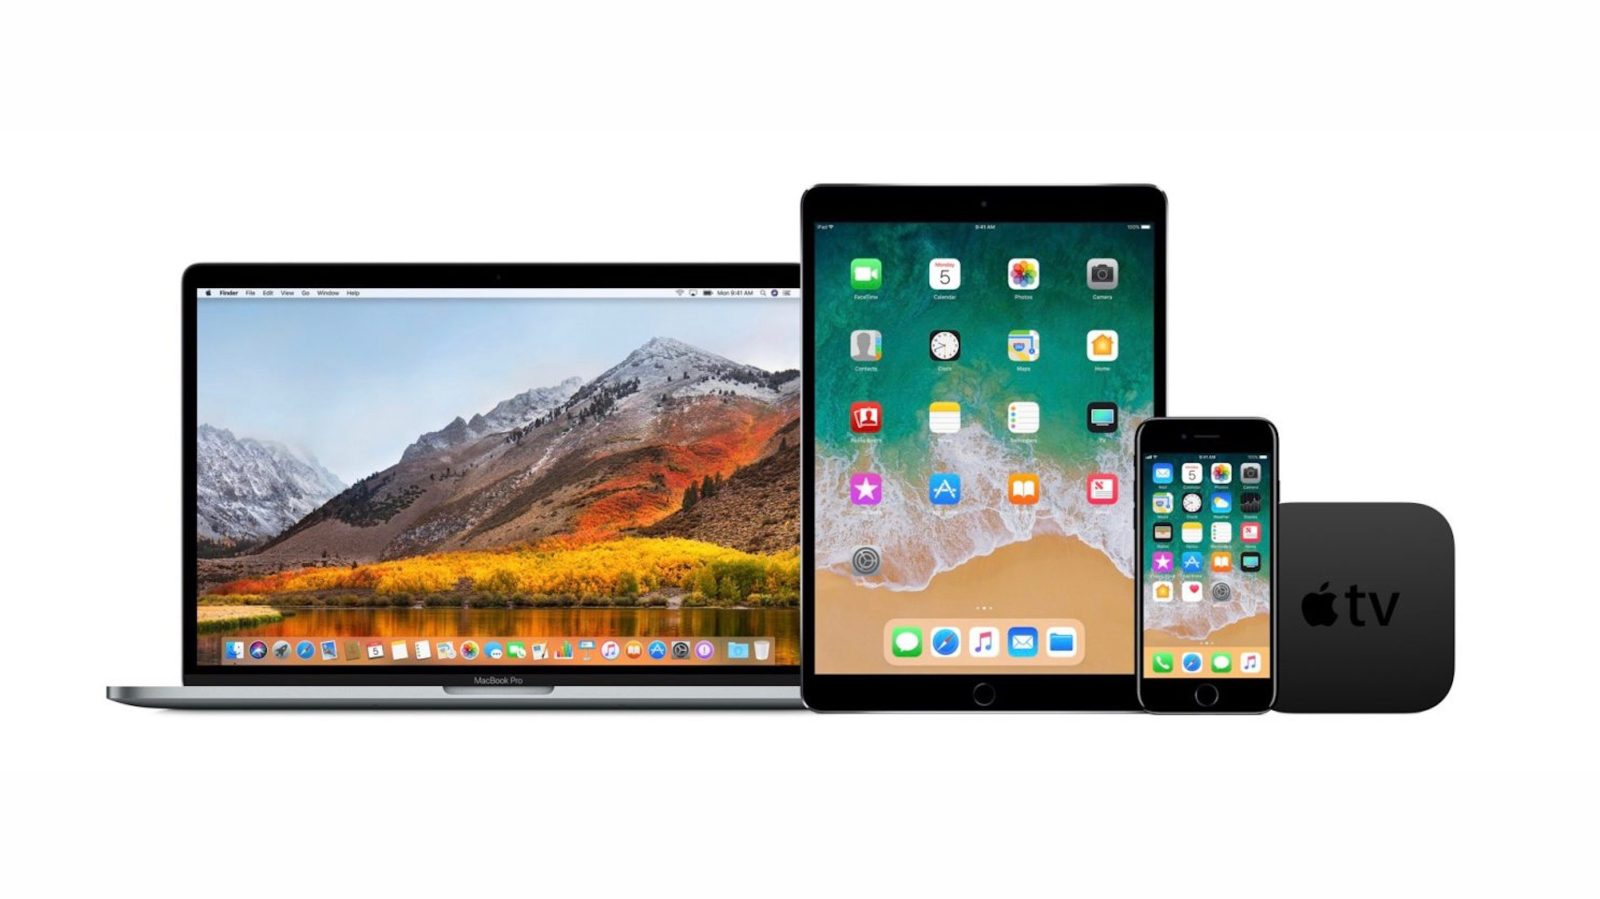 How To Transfer Files From iPhone To Mac - KrispiTech